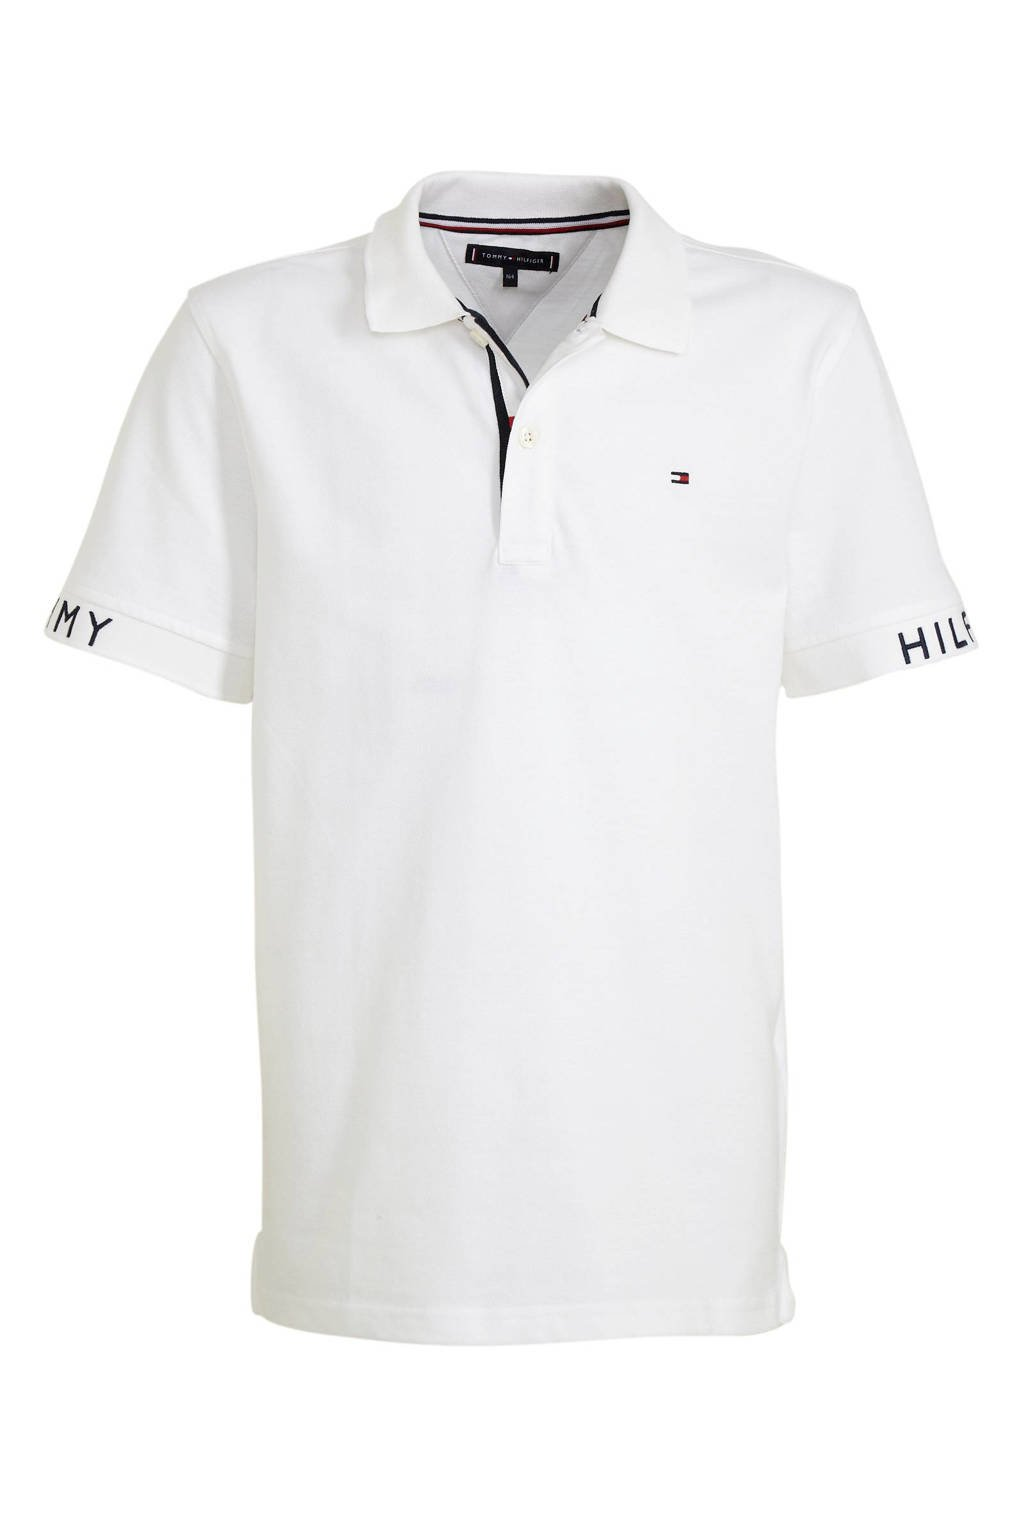 Tommy Hilfiger polo met tekst wit/donkerblauw, Wit/donkerblauw